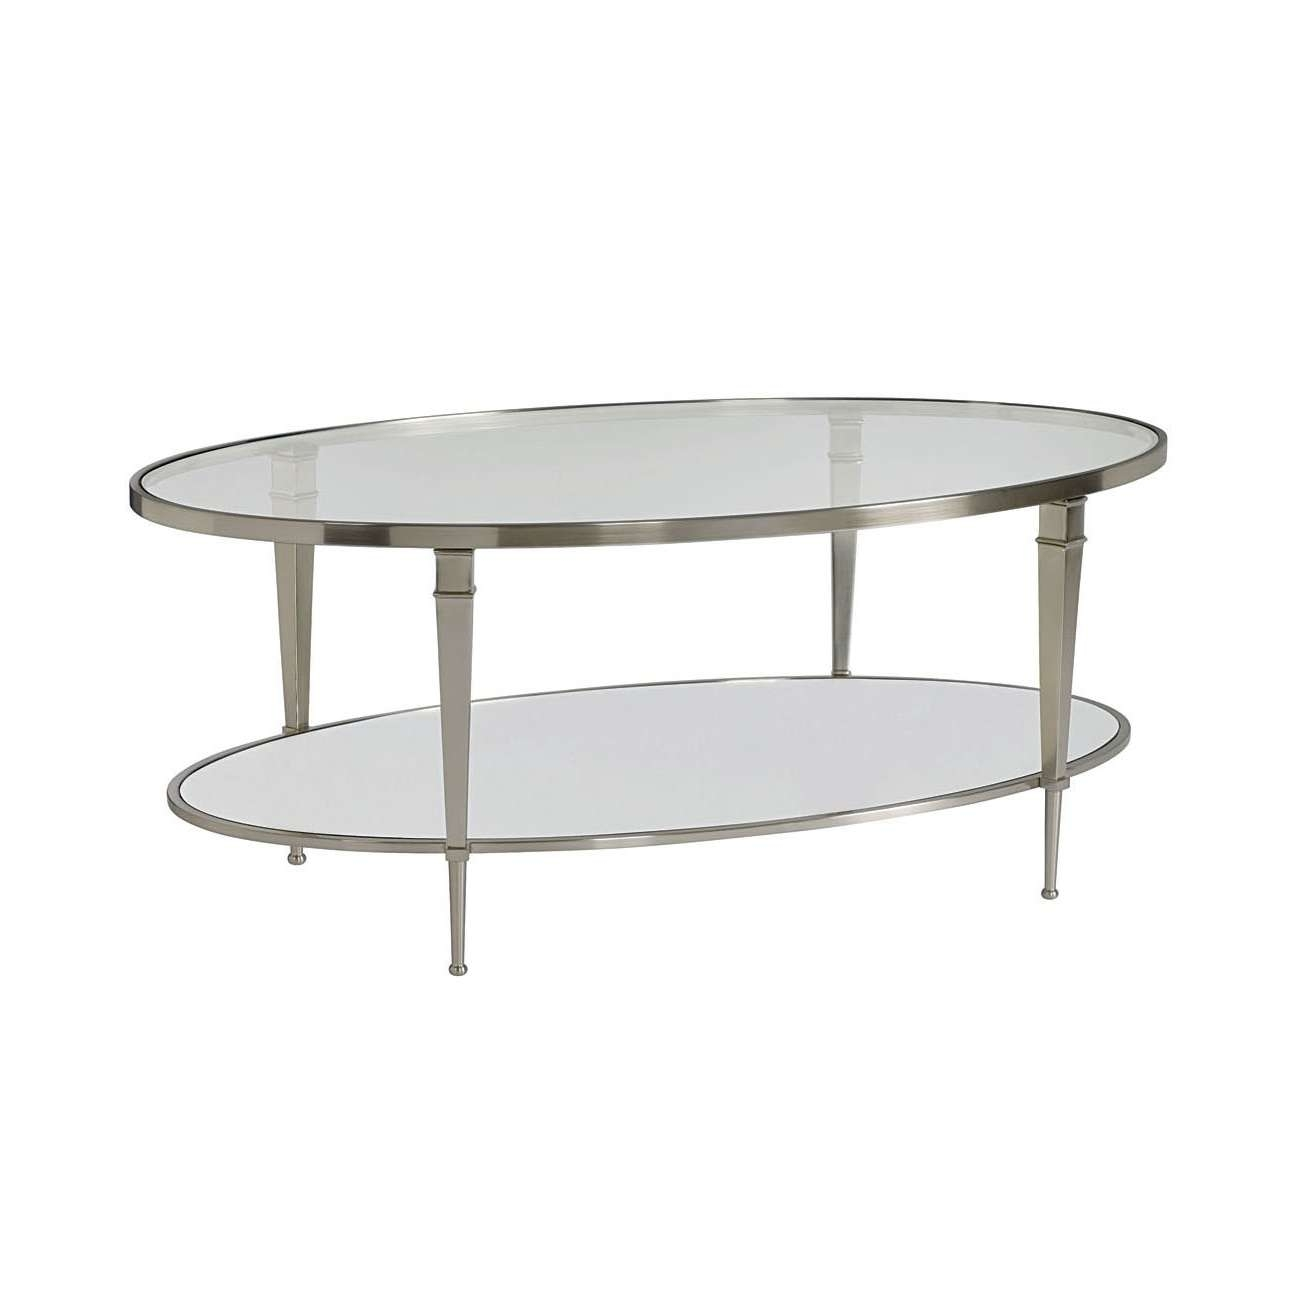 Hammary 173 912 Mallory Oval Cocktail Table In Satin Nickel For Recent Vintage Mirror Coffee Tables (View 12 of 20)